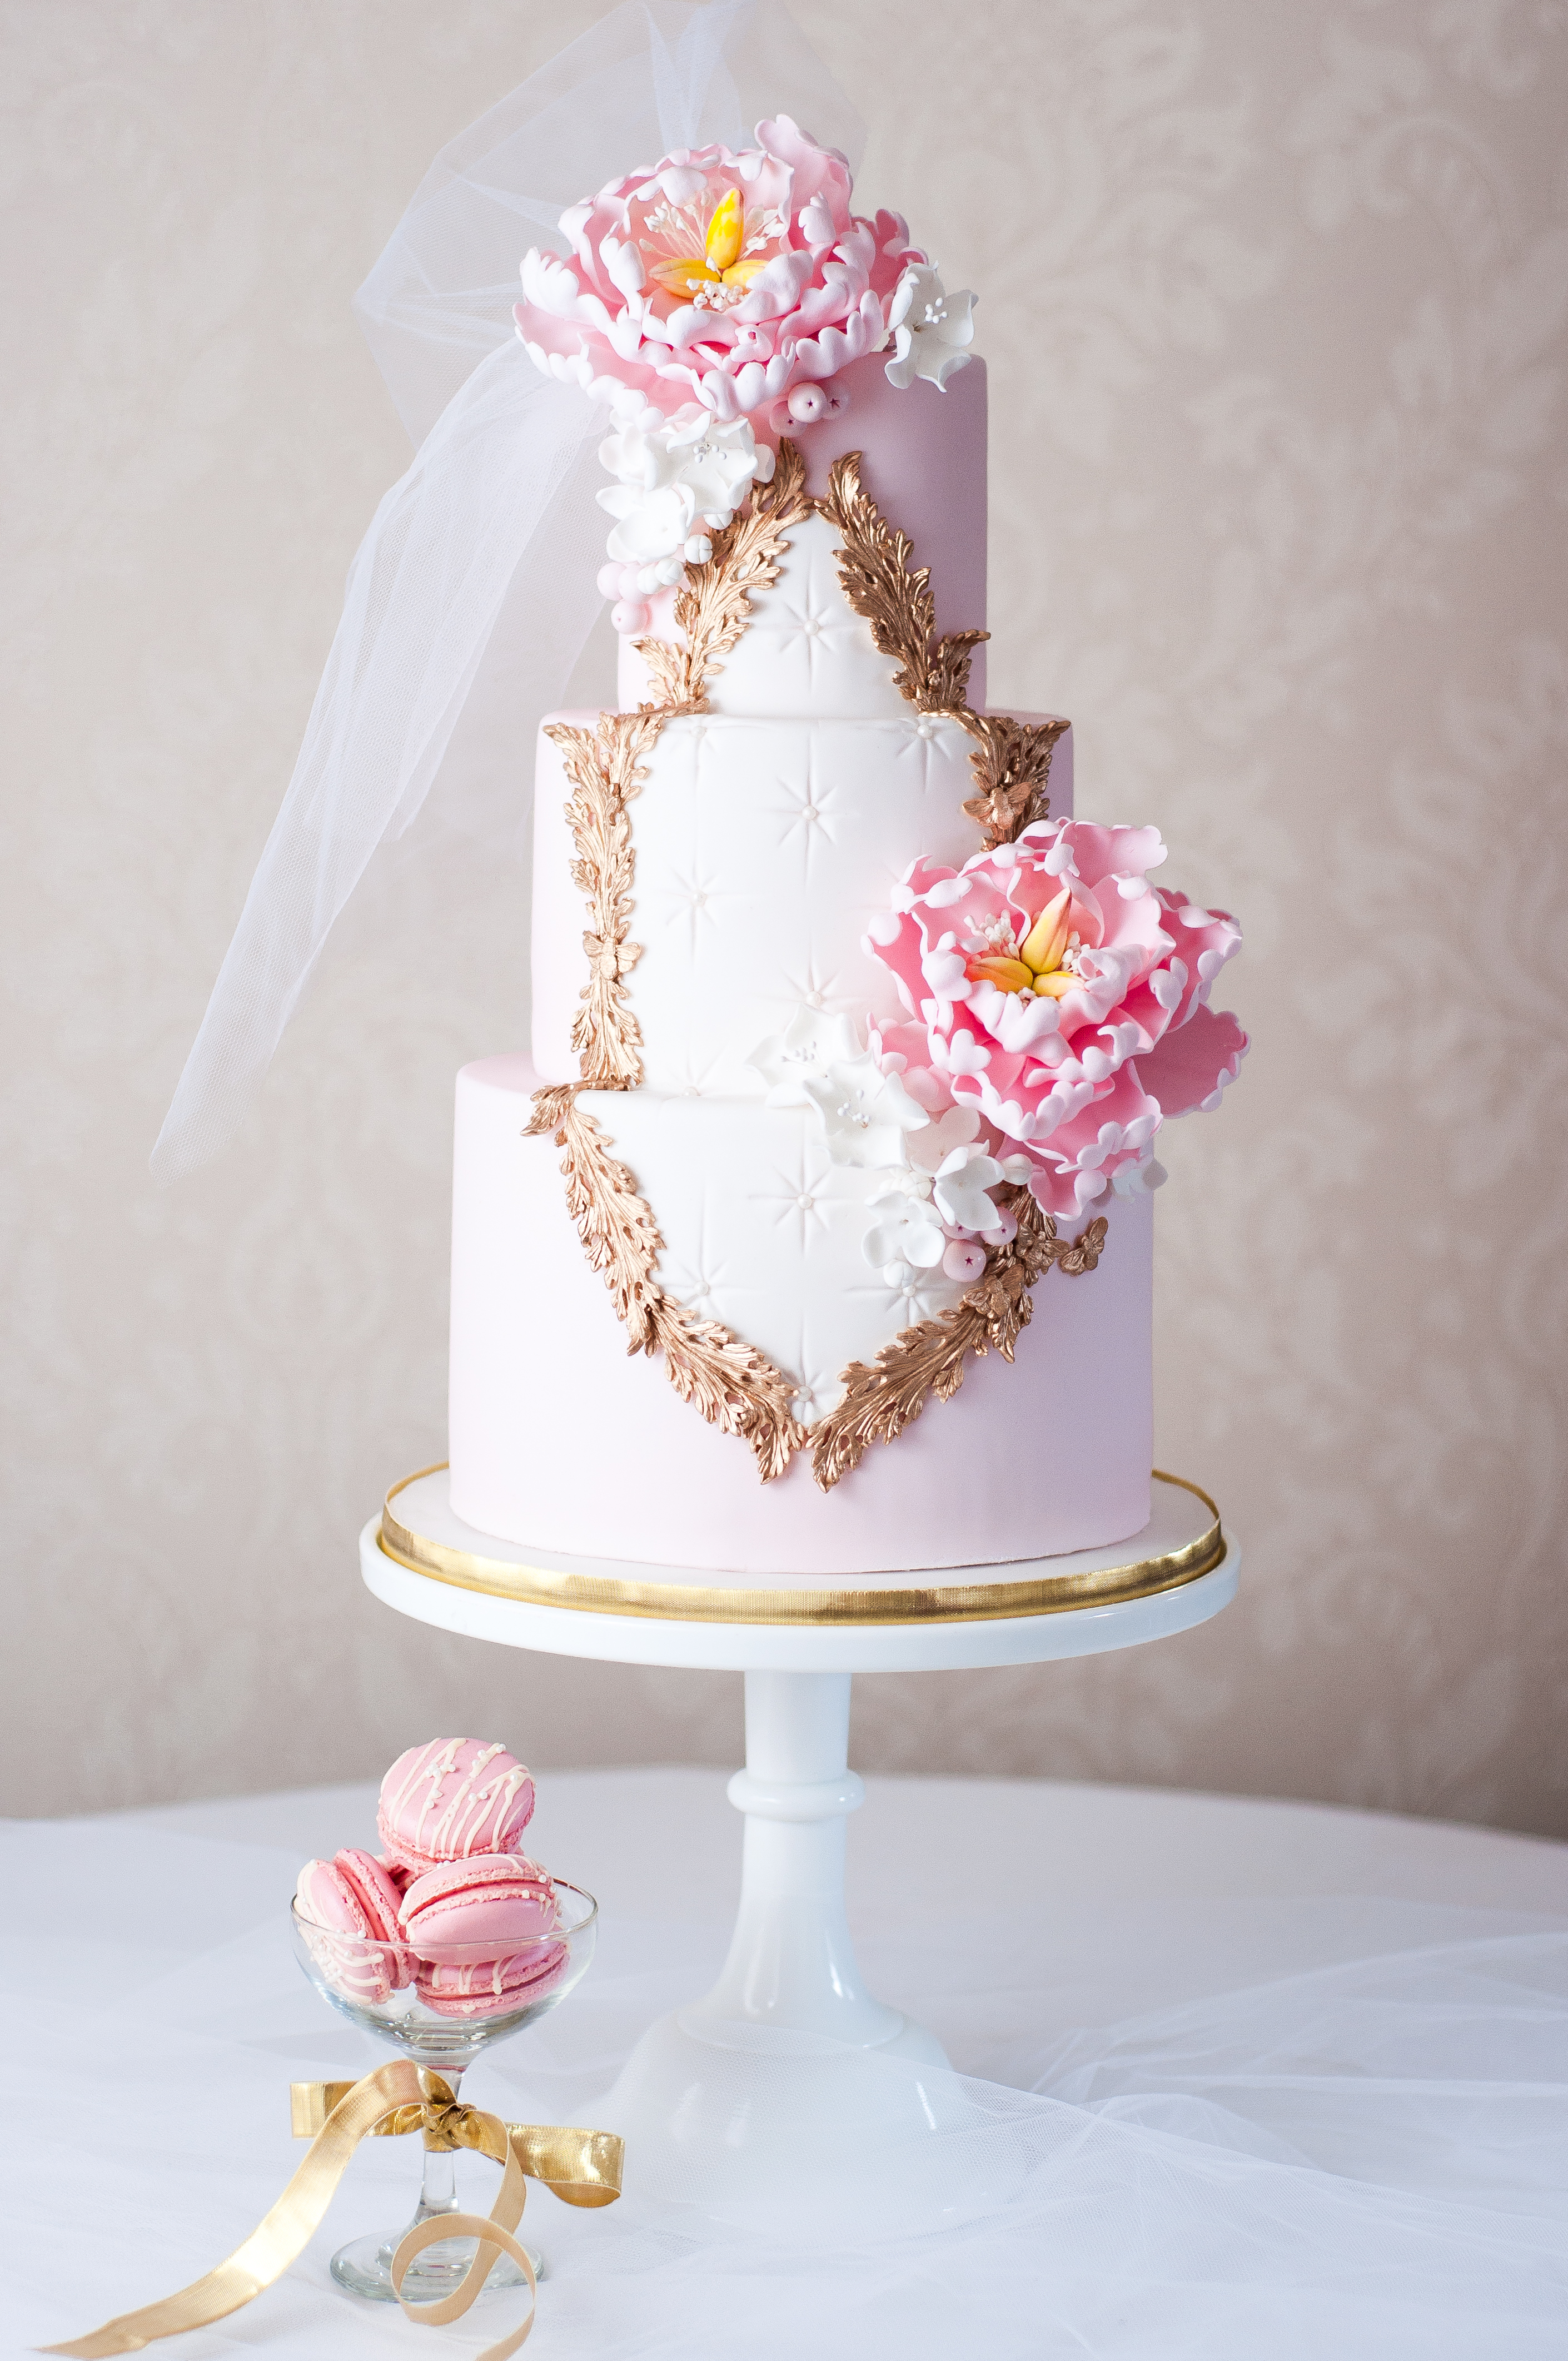 All baby Pink Rococo styled fondant wedding cake